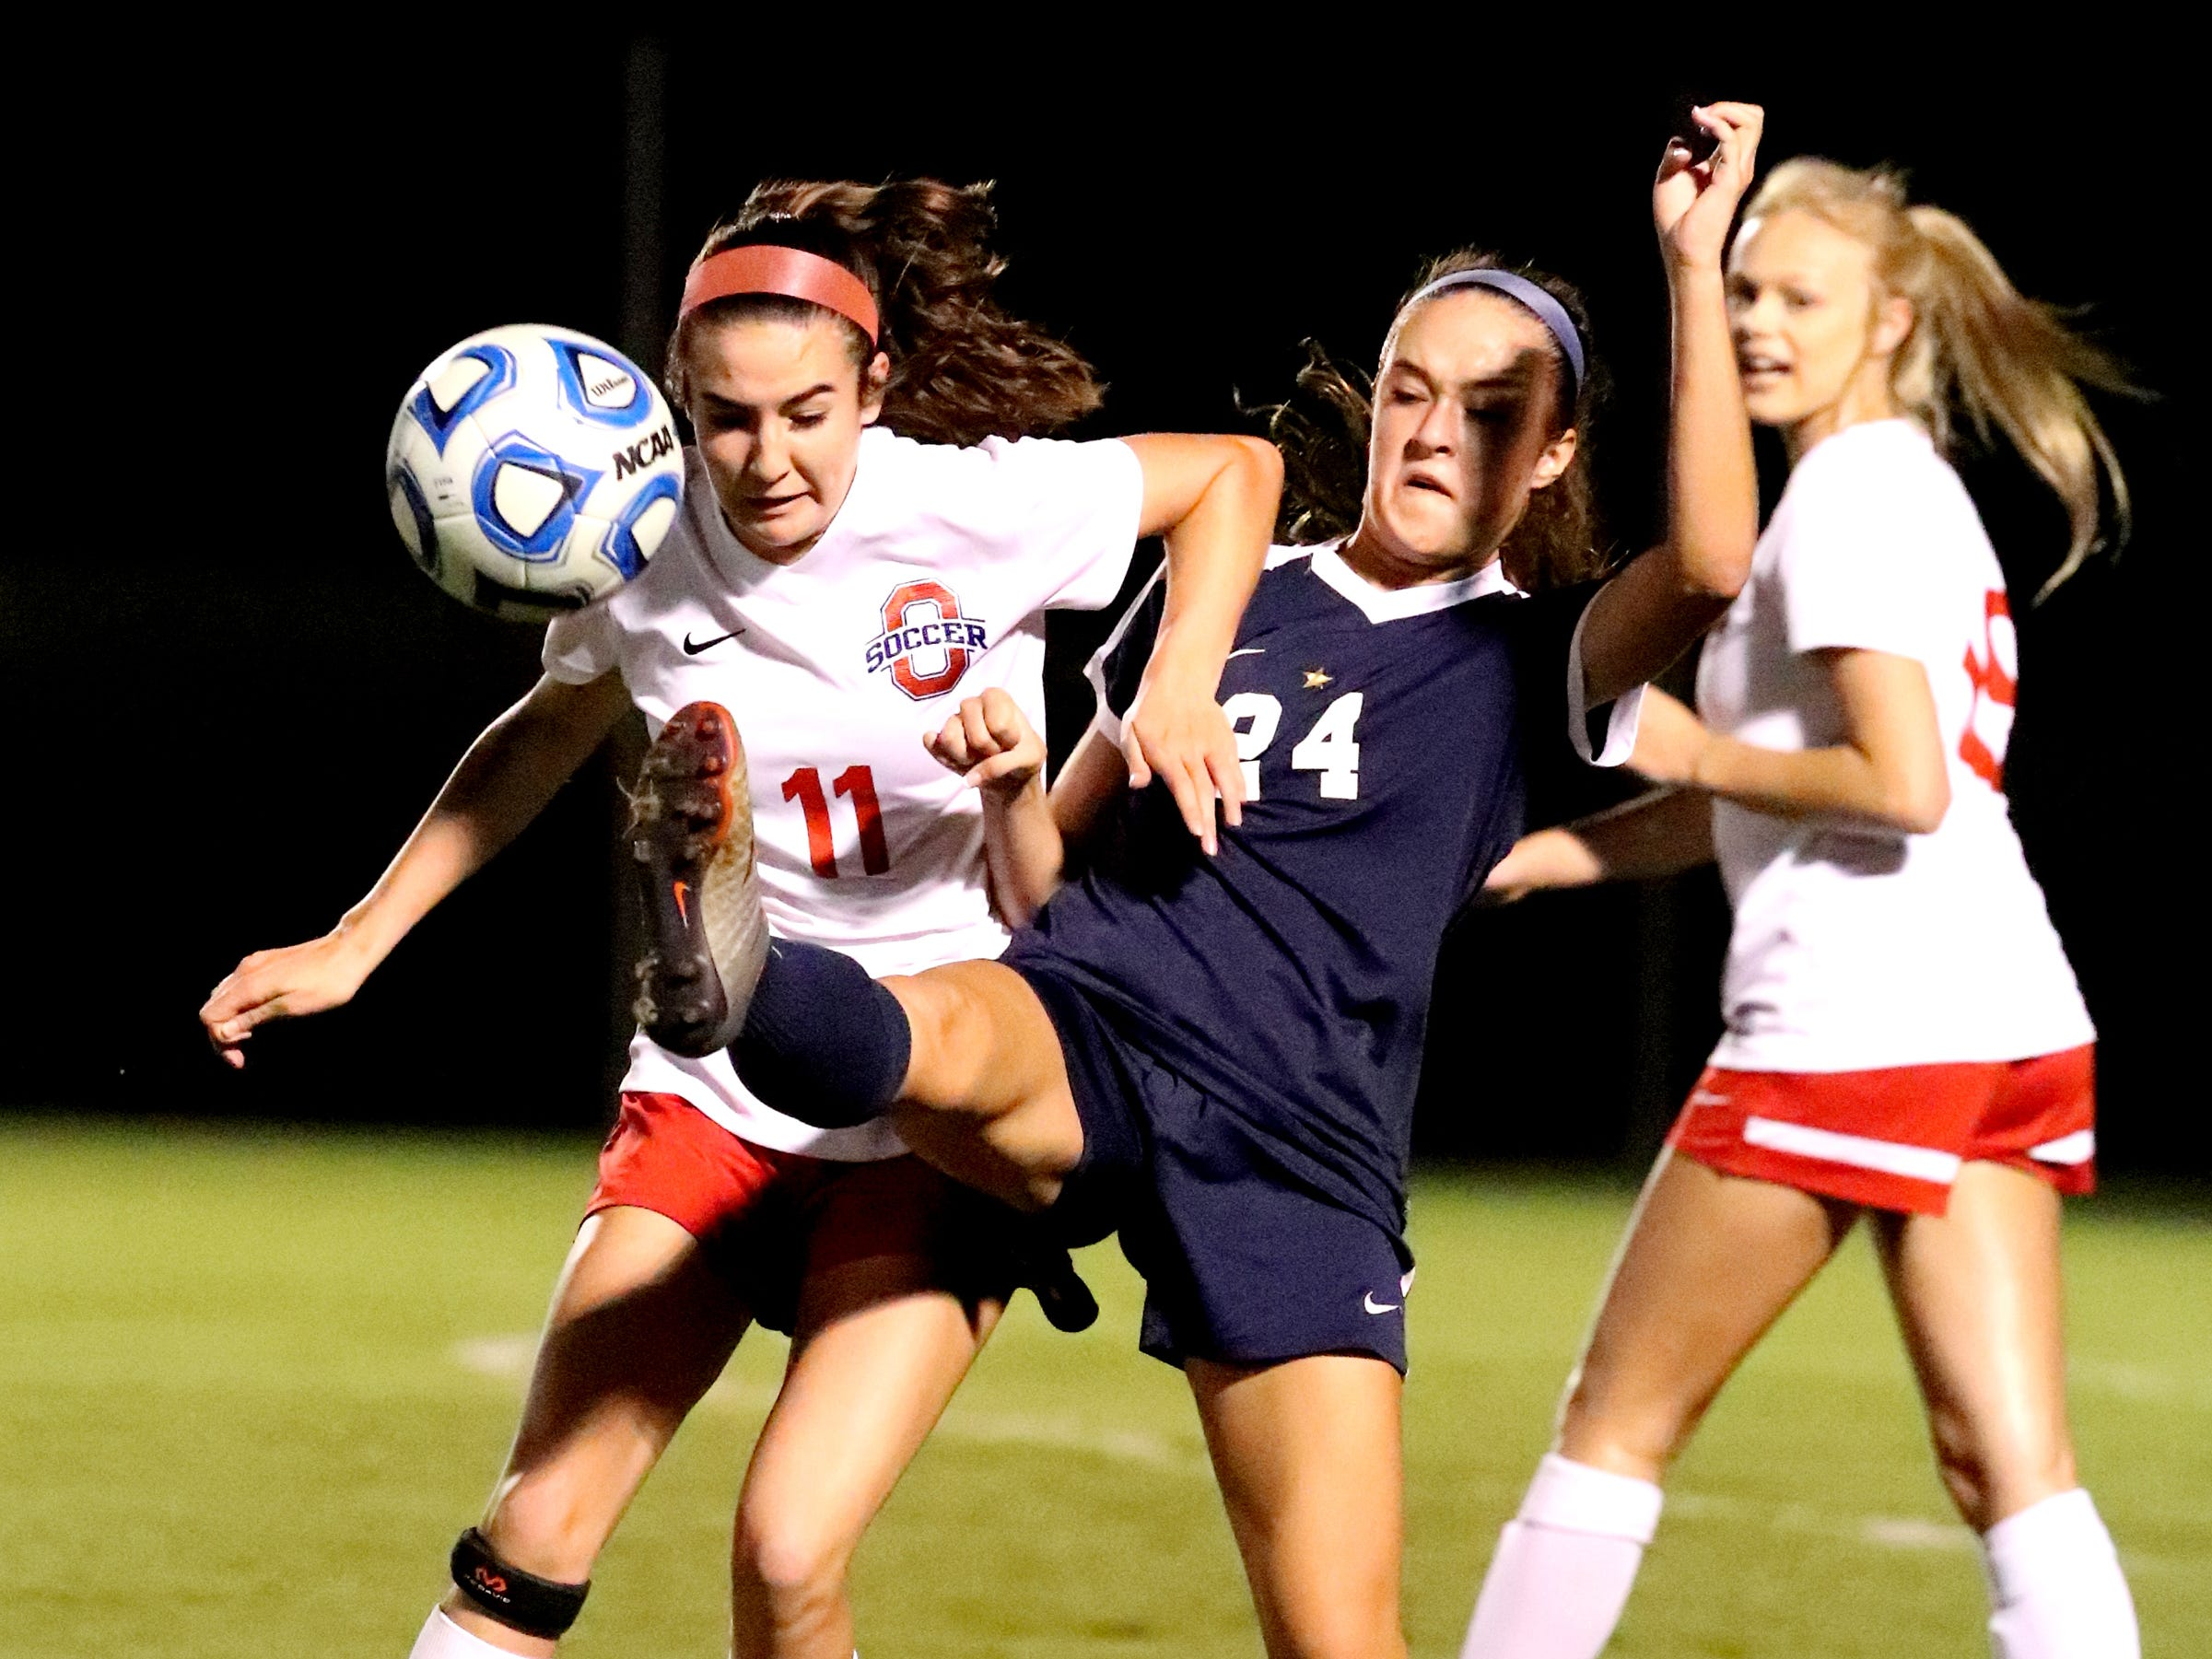 Oakland's Madeline Myers  (11) and Siegel's Kristen Wojciechowski (24) both go after the ball during the semifinals of the 7-AAA Soccer Tournament, on Tuesday,  Oct. 09, 2018 at the Siegel Soccer Complex.